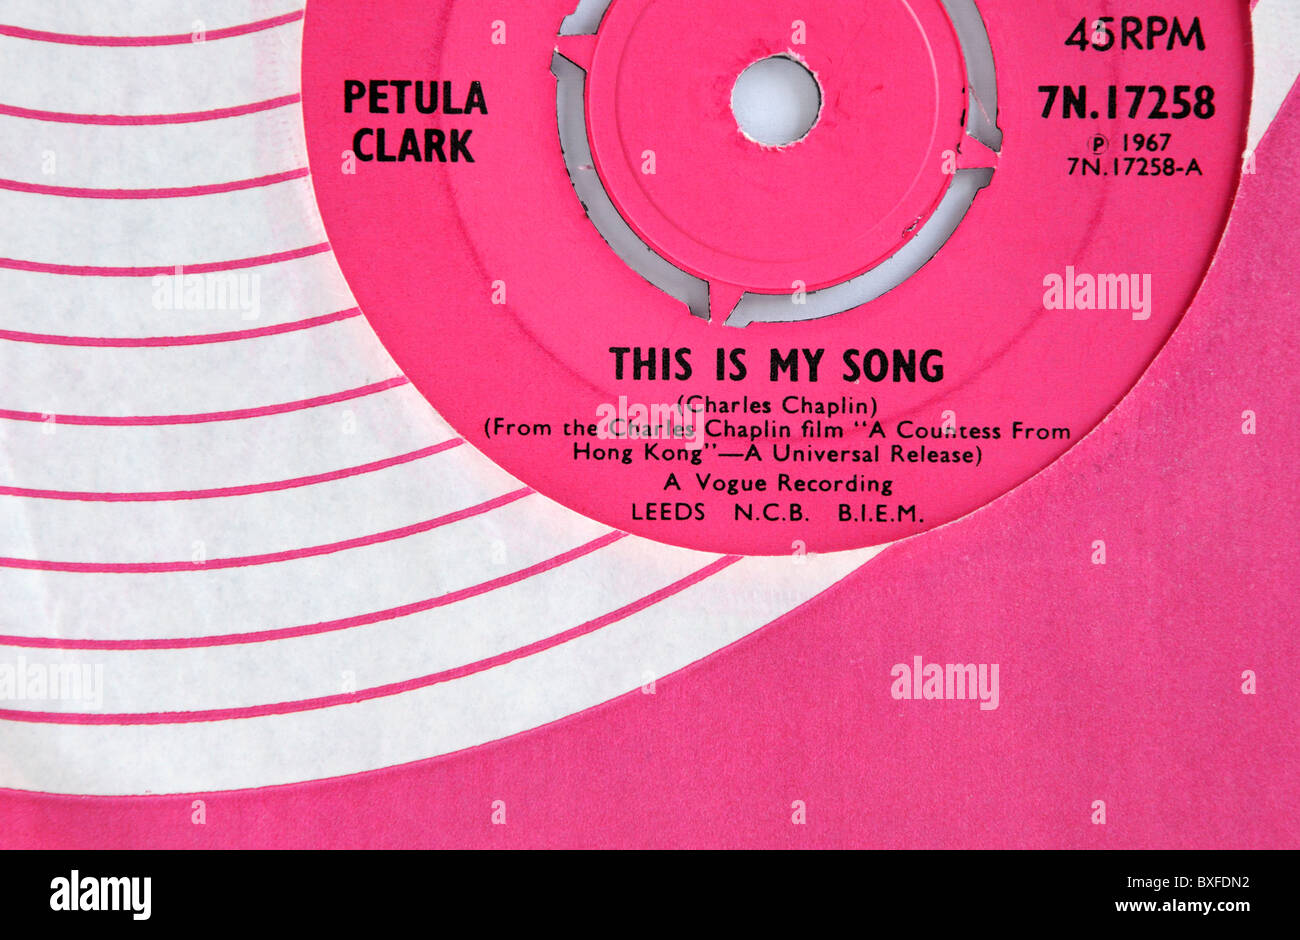 Petula Clark's 1967 single 'This is my Song' - Stock Image